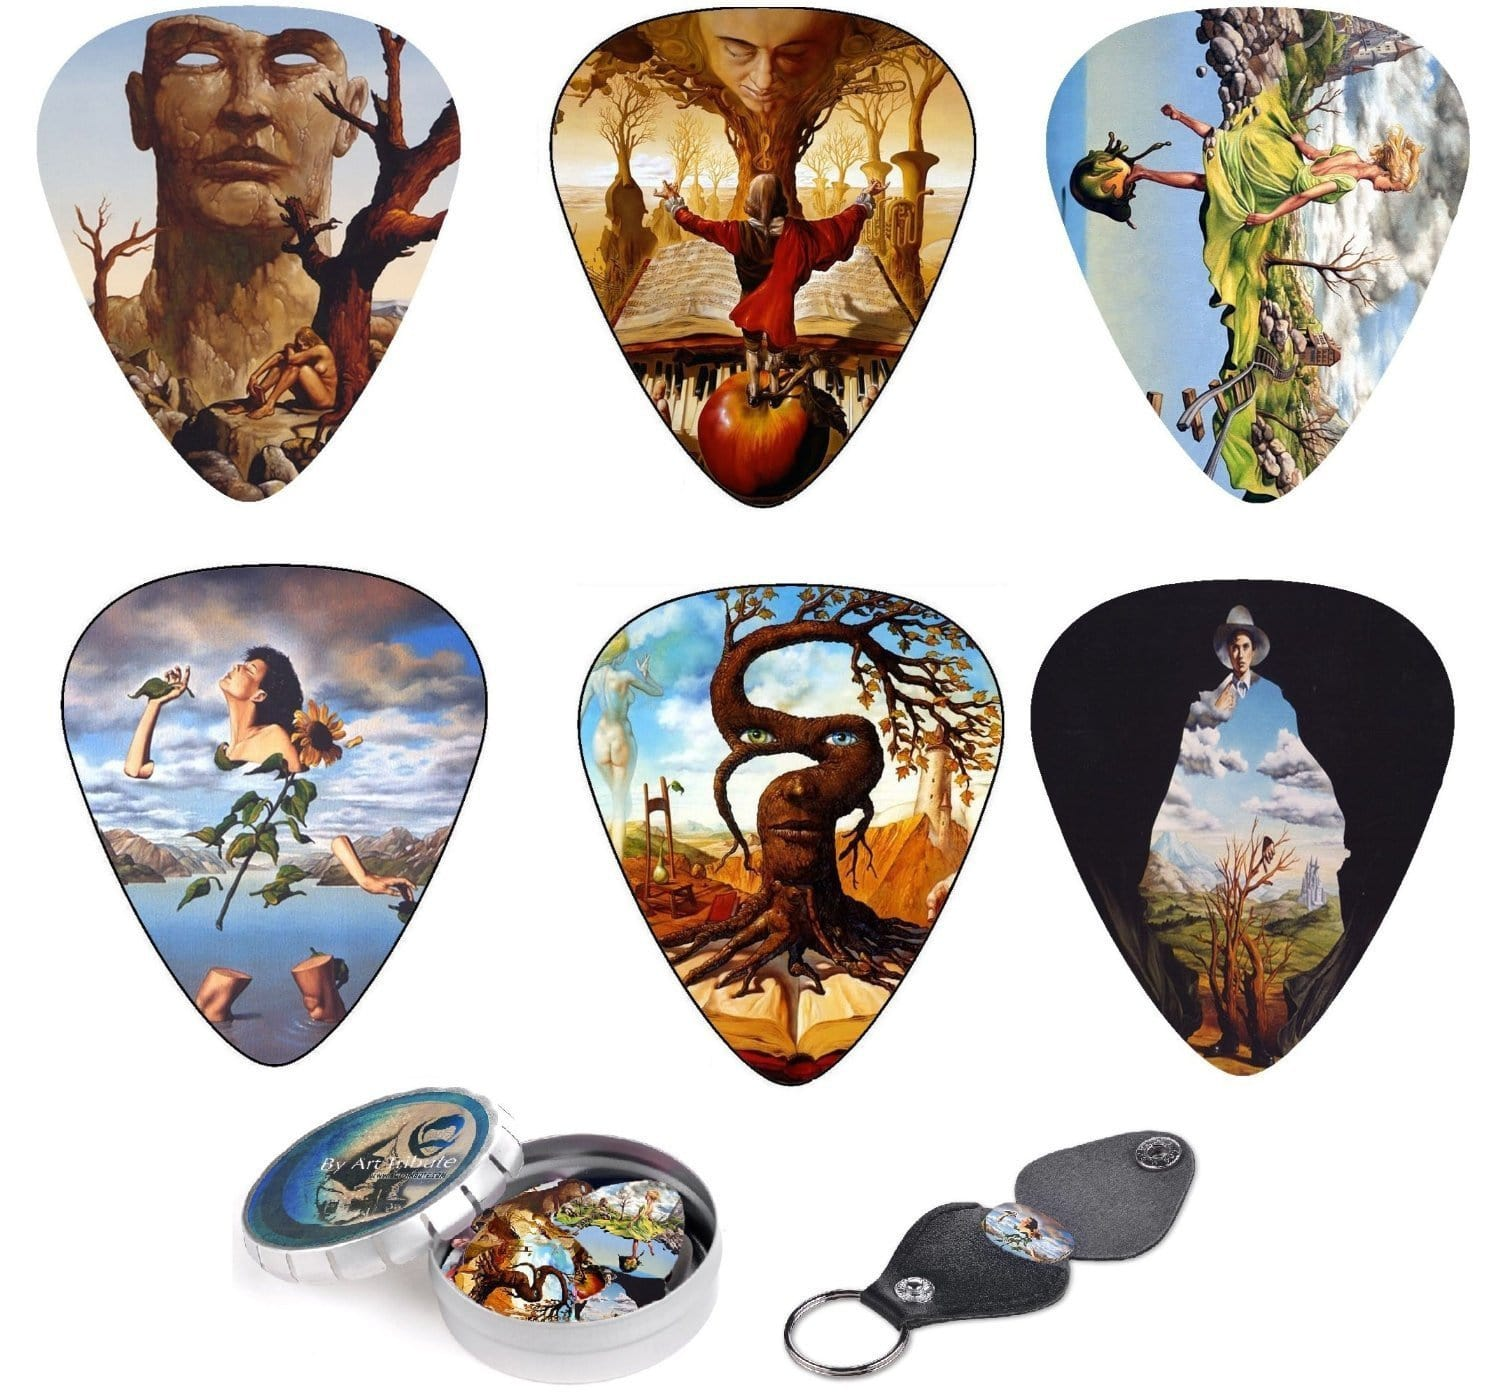 Surreal Art Guitar Picks Inspired By Salvador Dali - Art Tributes